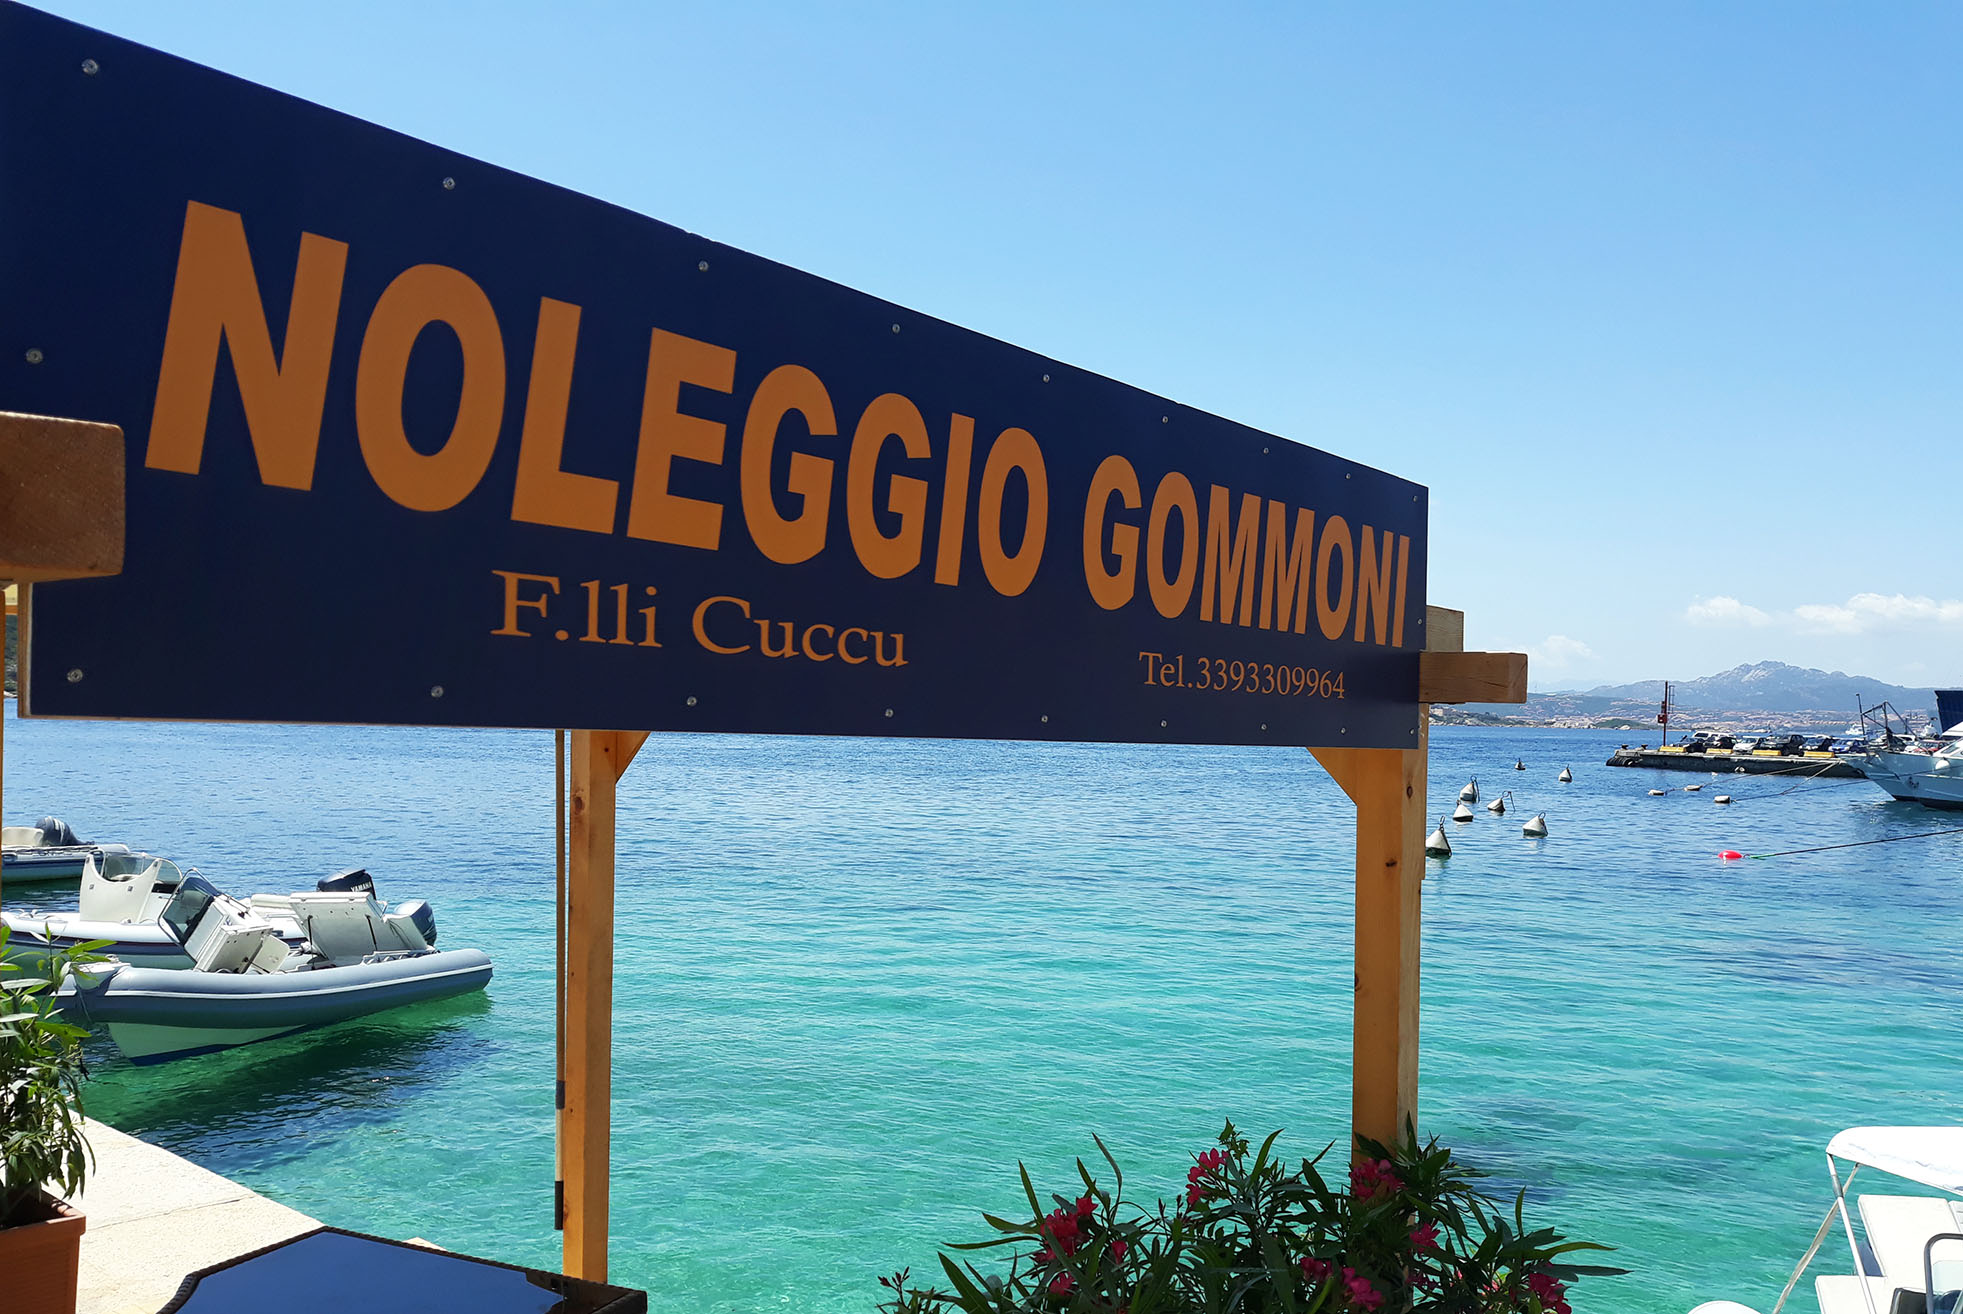 In gommone tra le isole